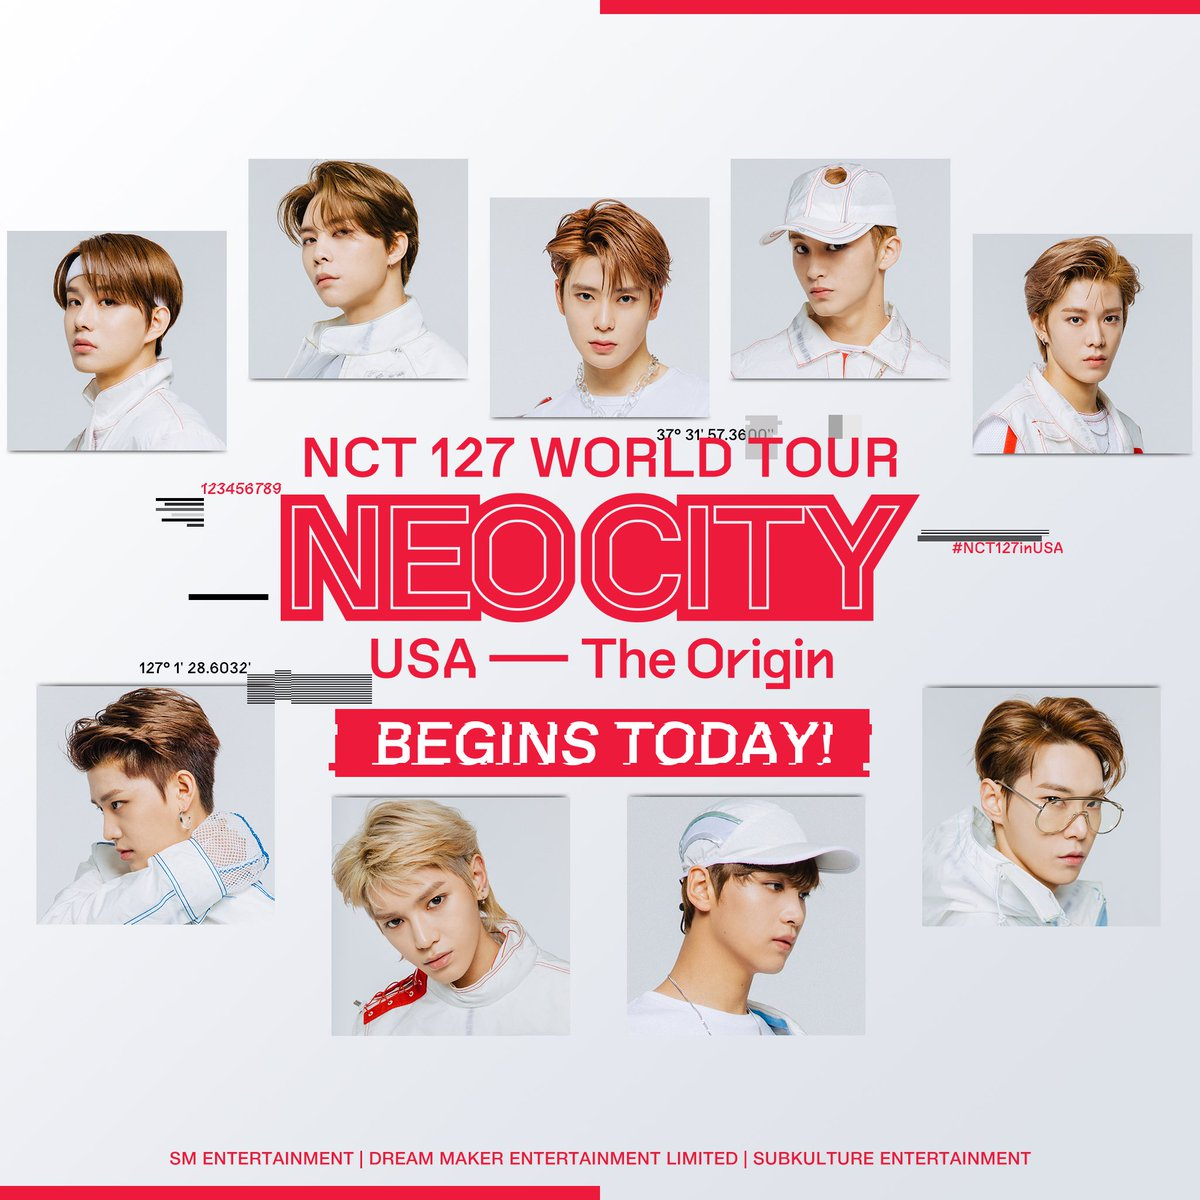 Today's the day!  NCT 127 WORLD TOUR NEO CITY: USA — The Origin is finally here  We can't wait for the show to start! See you soon, Newark  #NEOCITYinUSA #NCT127inUSA #NCT127   Last chance to get tickets for #NCT127inNJ:  https://www. ticketmaster.com/event/02005670 E19969A1 &nbsp; … <br>http://pic.twitter.com/W5ew9XrFQK